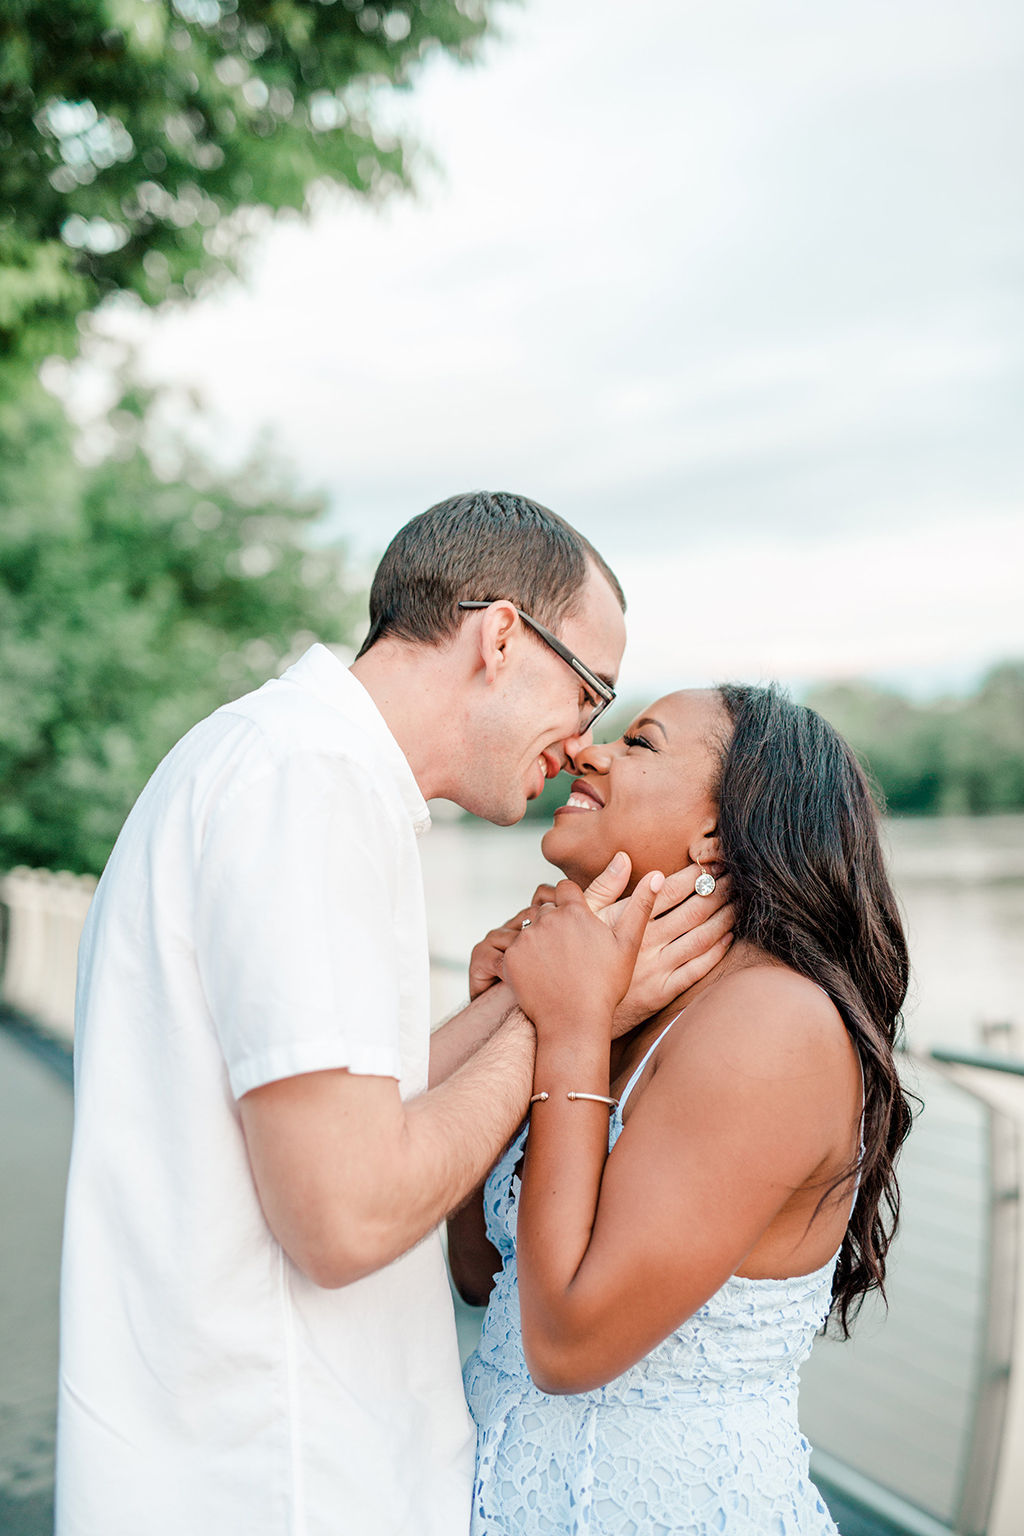 View More: http://hannahbjorndalphotography.pass.us/brookeanddanny